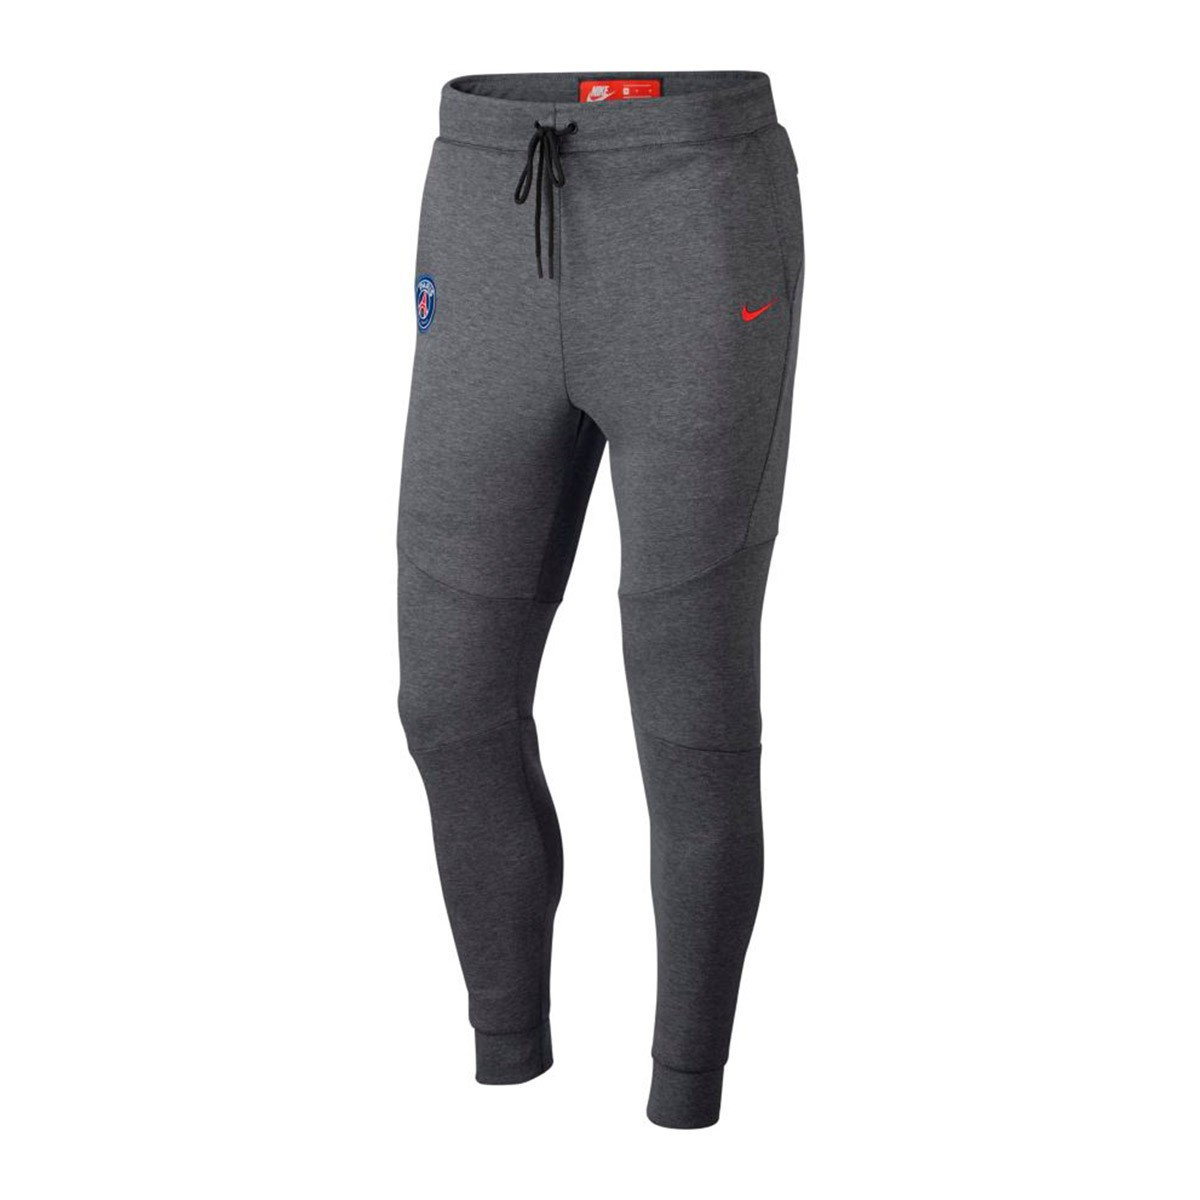 0354f936d Nike Paris Saint-Germain NSW 2017-2018 Long pants. Carbon heather-Rush ...